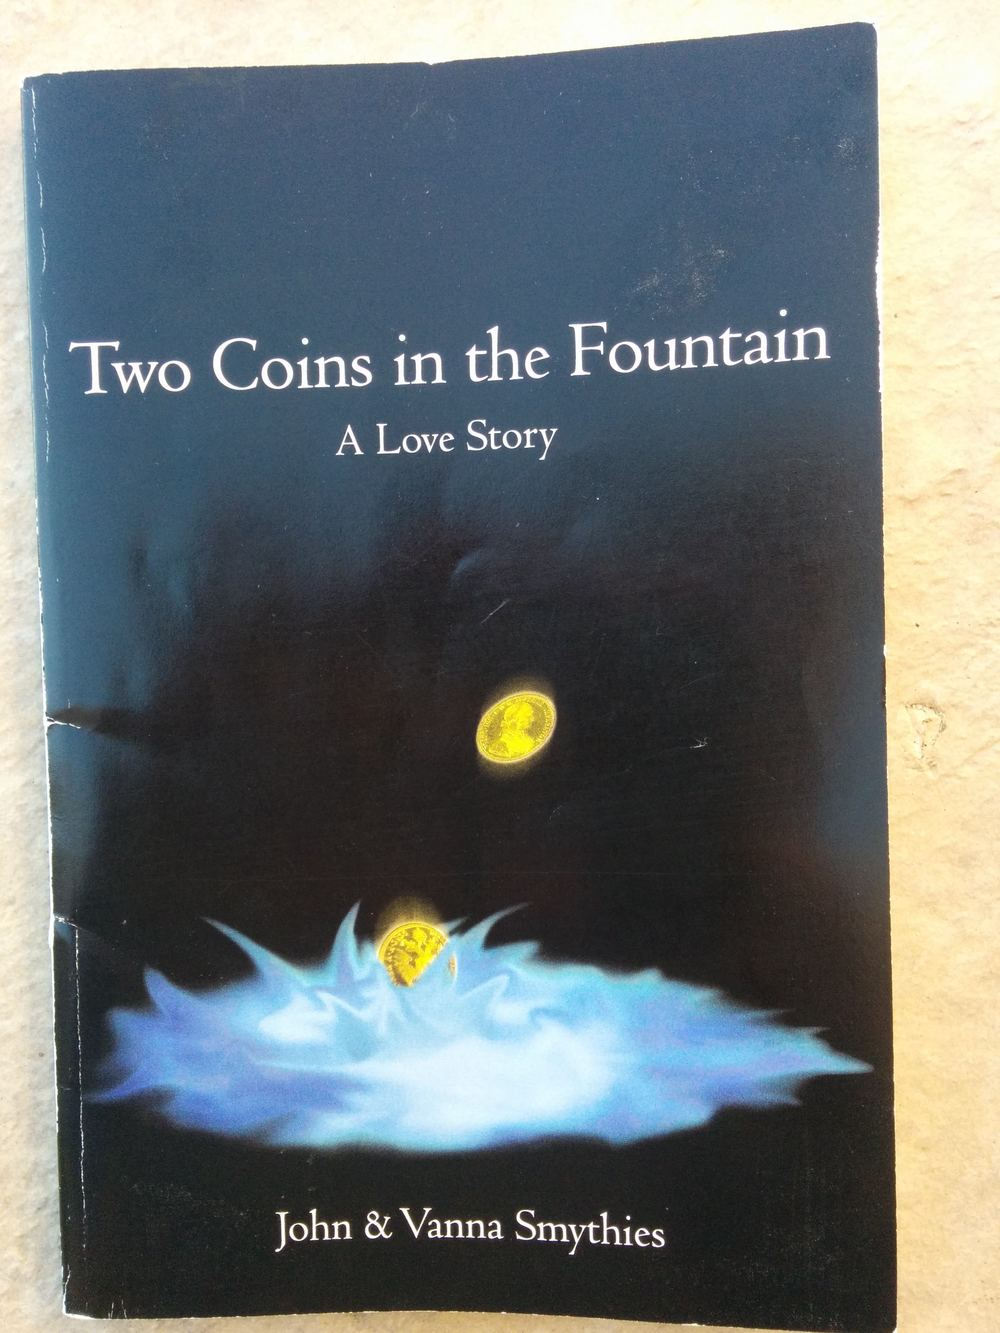 Two Coins.jpg